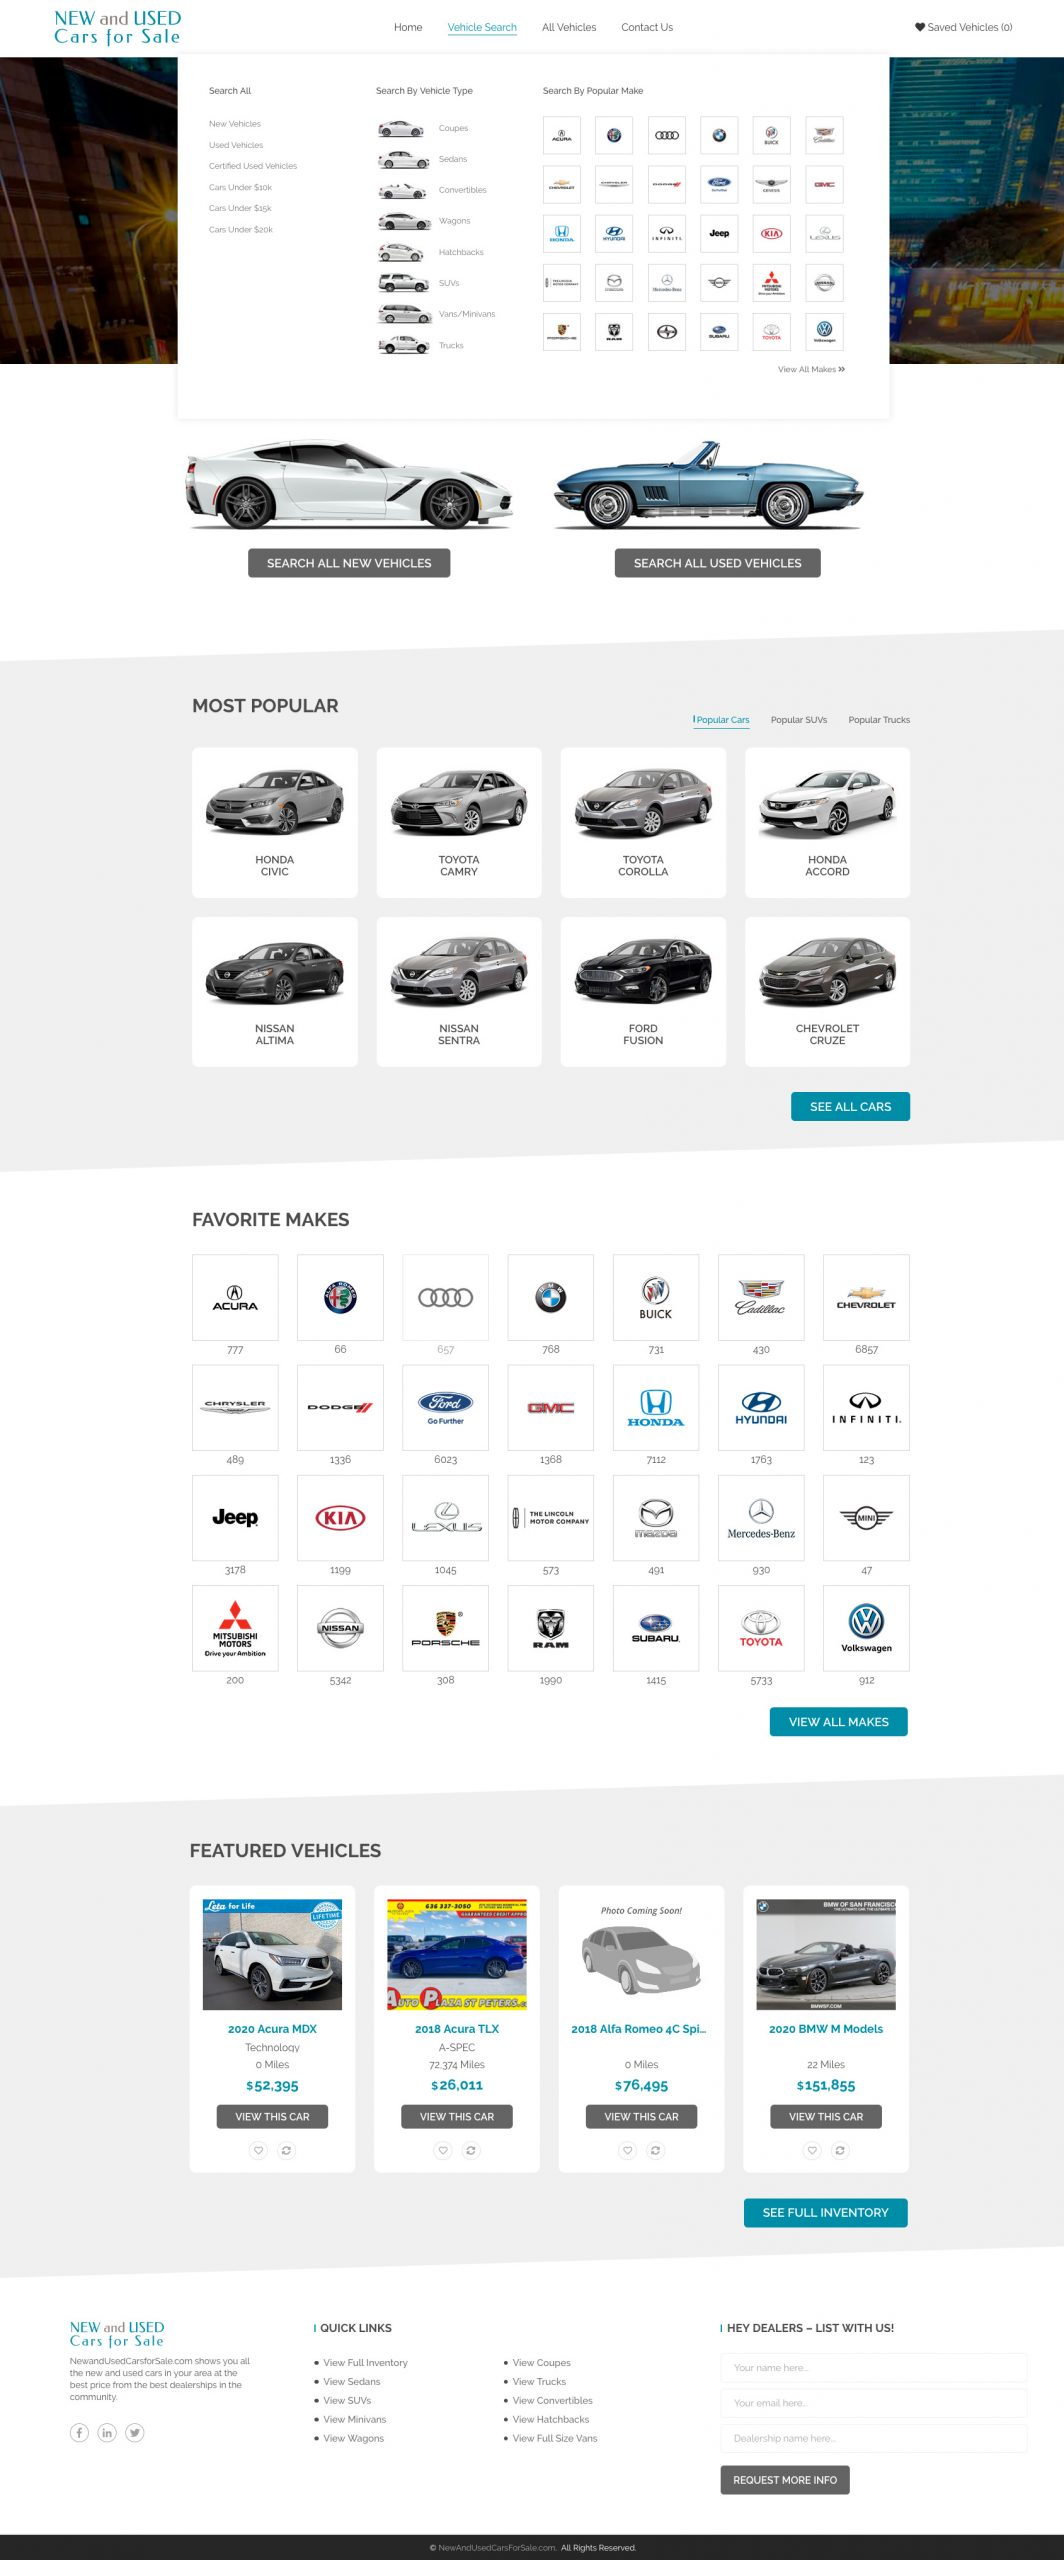 Home page showing nav dropdown for New and Used Cars for Sale